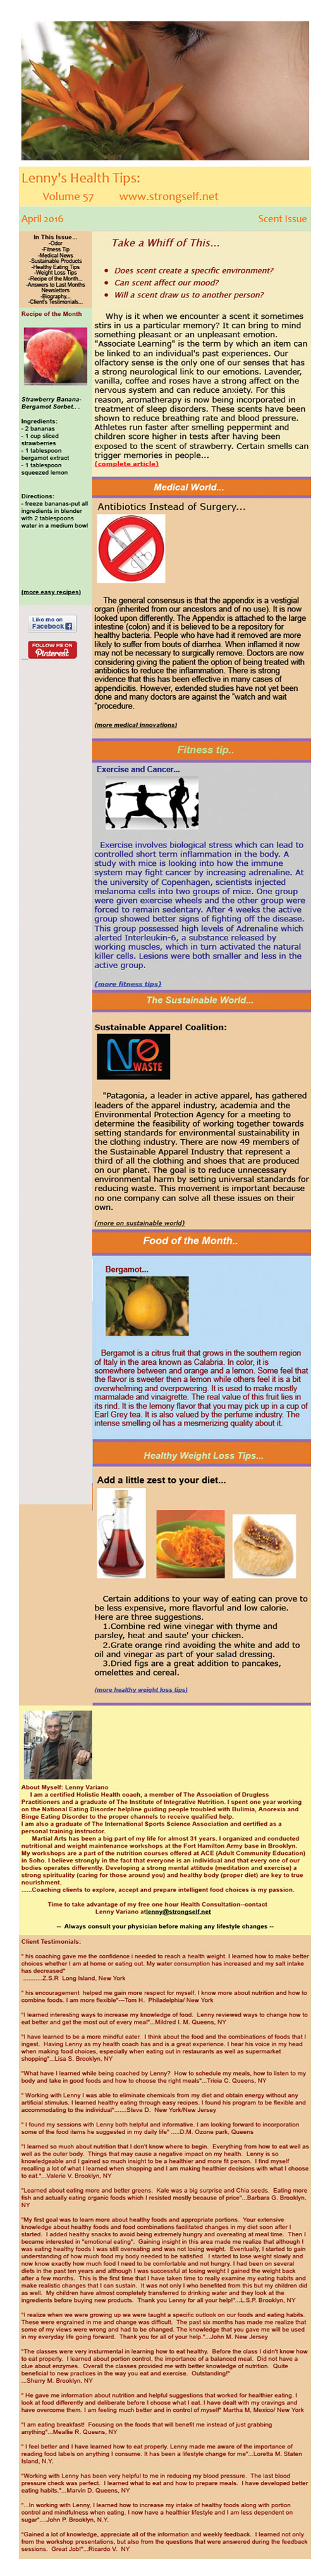 April 2016 Healthy Tips Newsletter from certified Holistic Health Counselor Lenny Variano